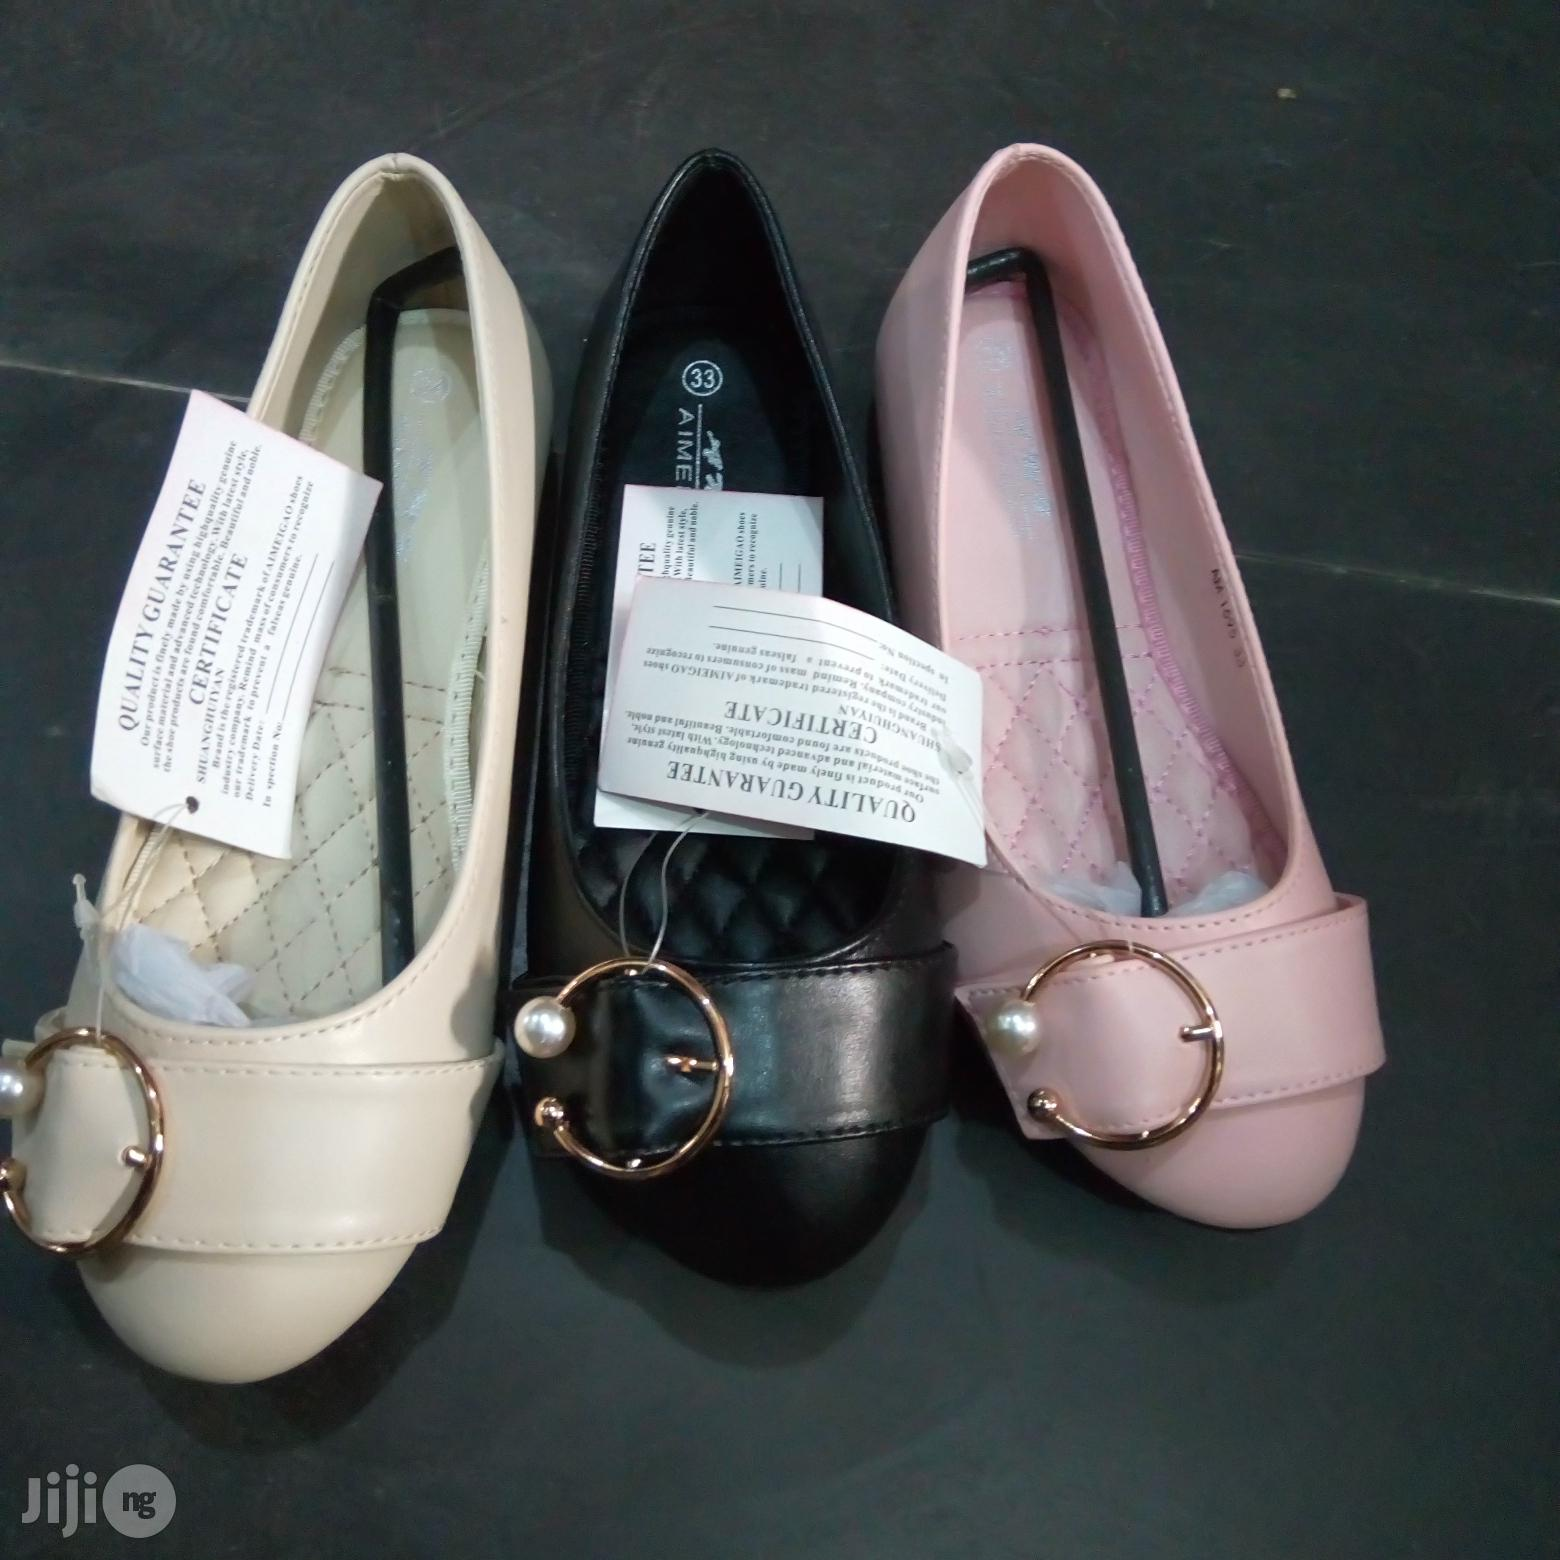 Aimeigo Girl's Shoes | Children's Shoes for sale in Yaba, Lagos State, Nigeria